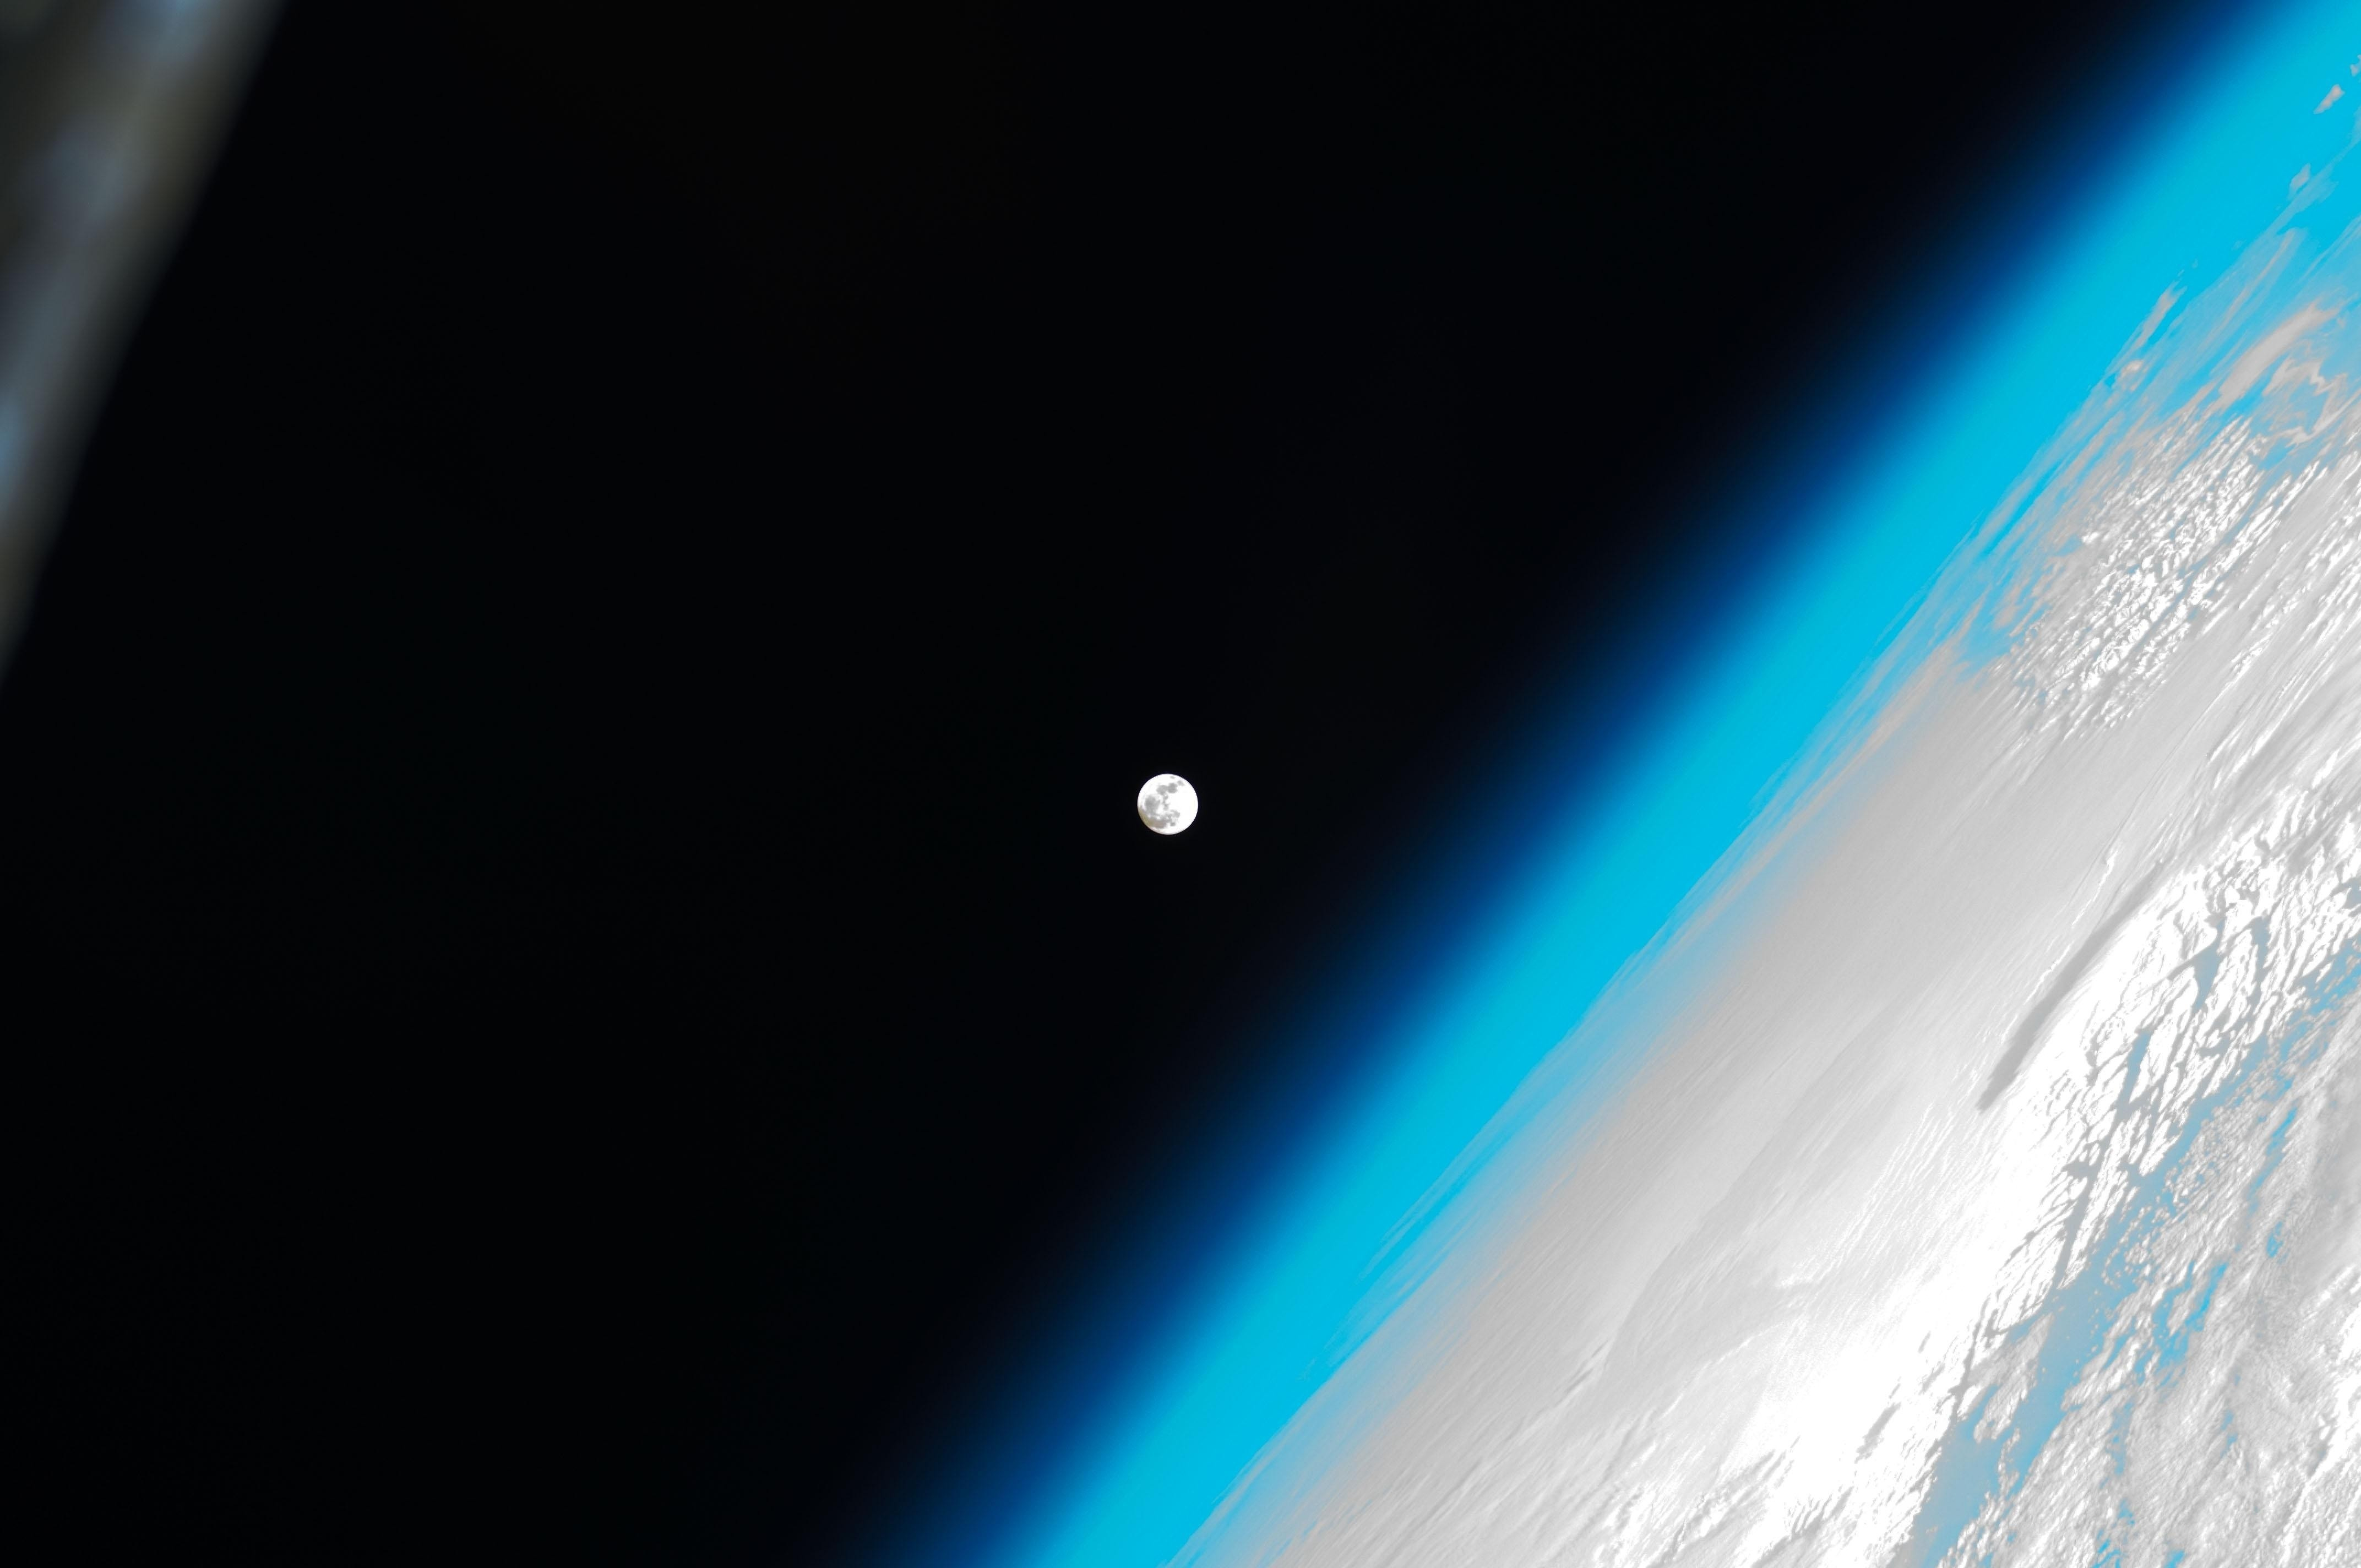 General 4288x2848 space universe Earth Moon planet space station orbits